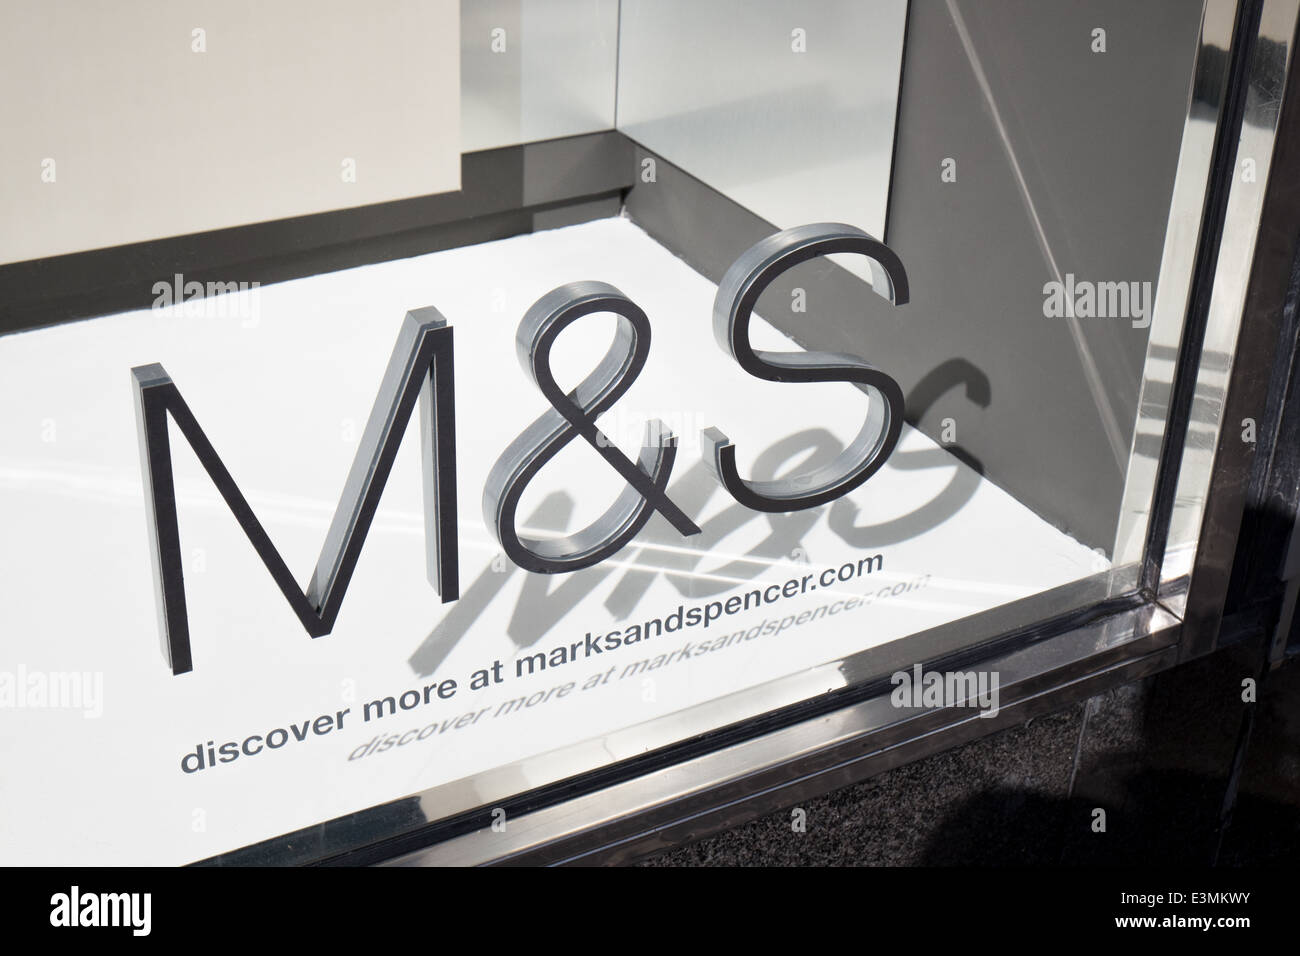 Bright sunshine on the Marks & Spencer company logo on a glass store front casting a shadow in the shop windows - Stock Image